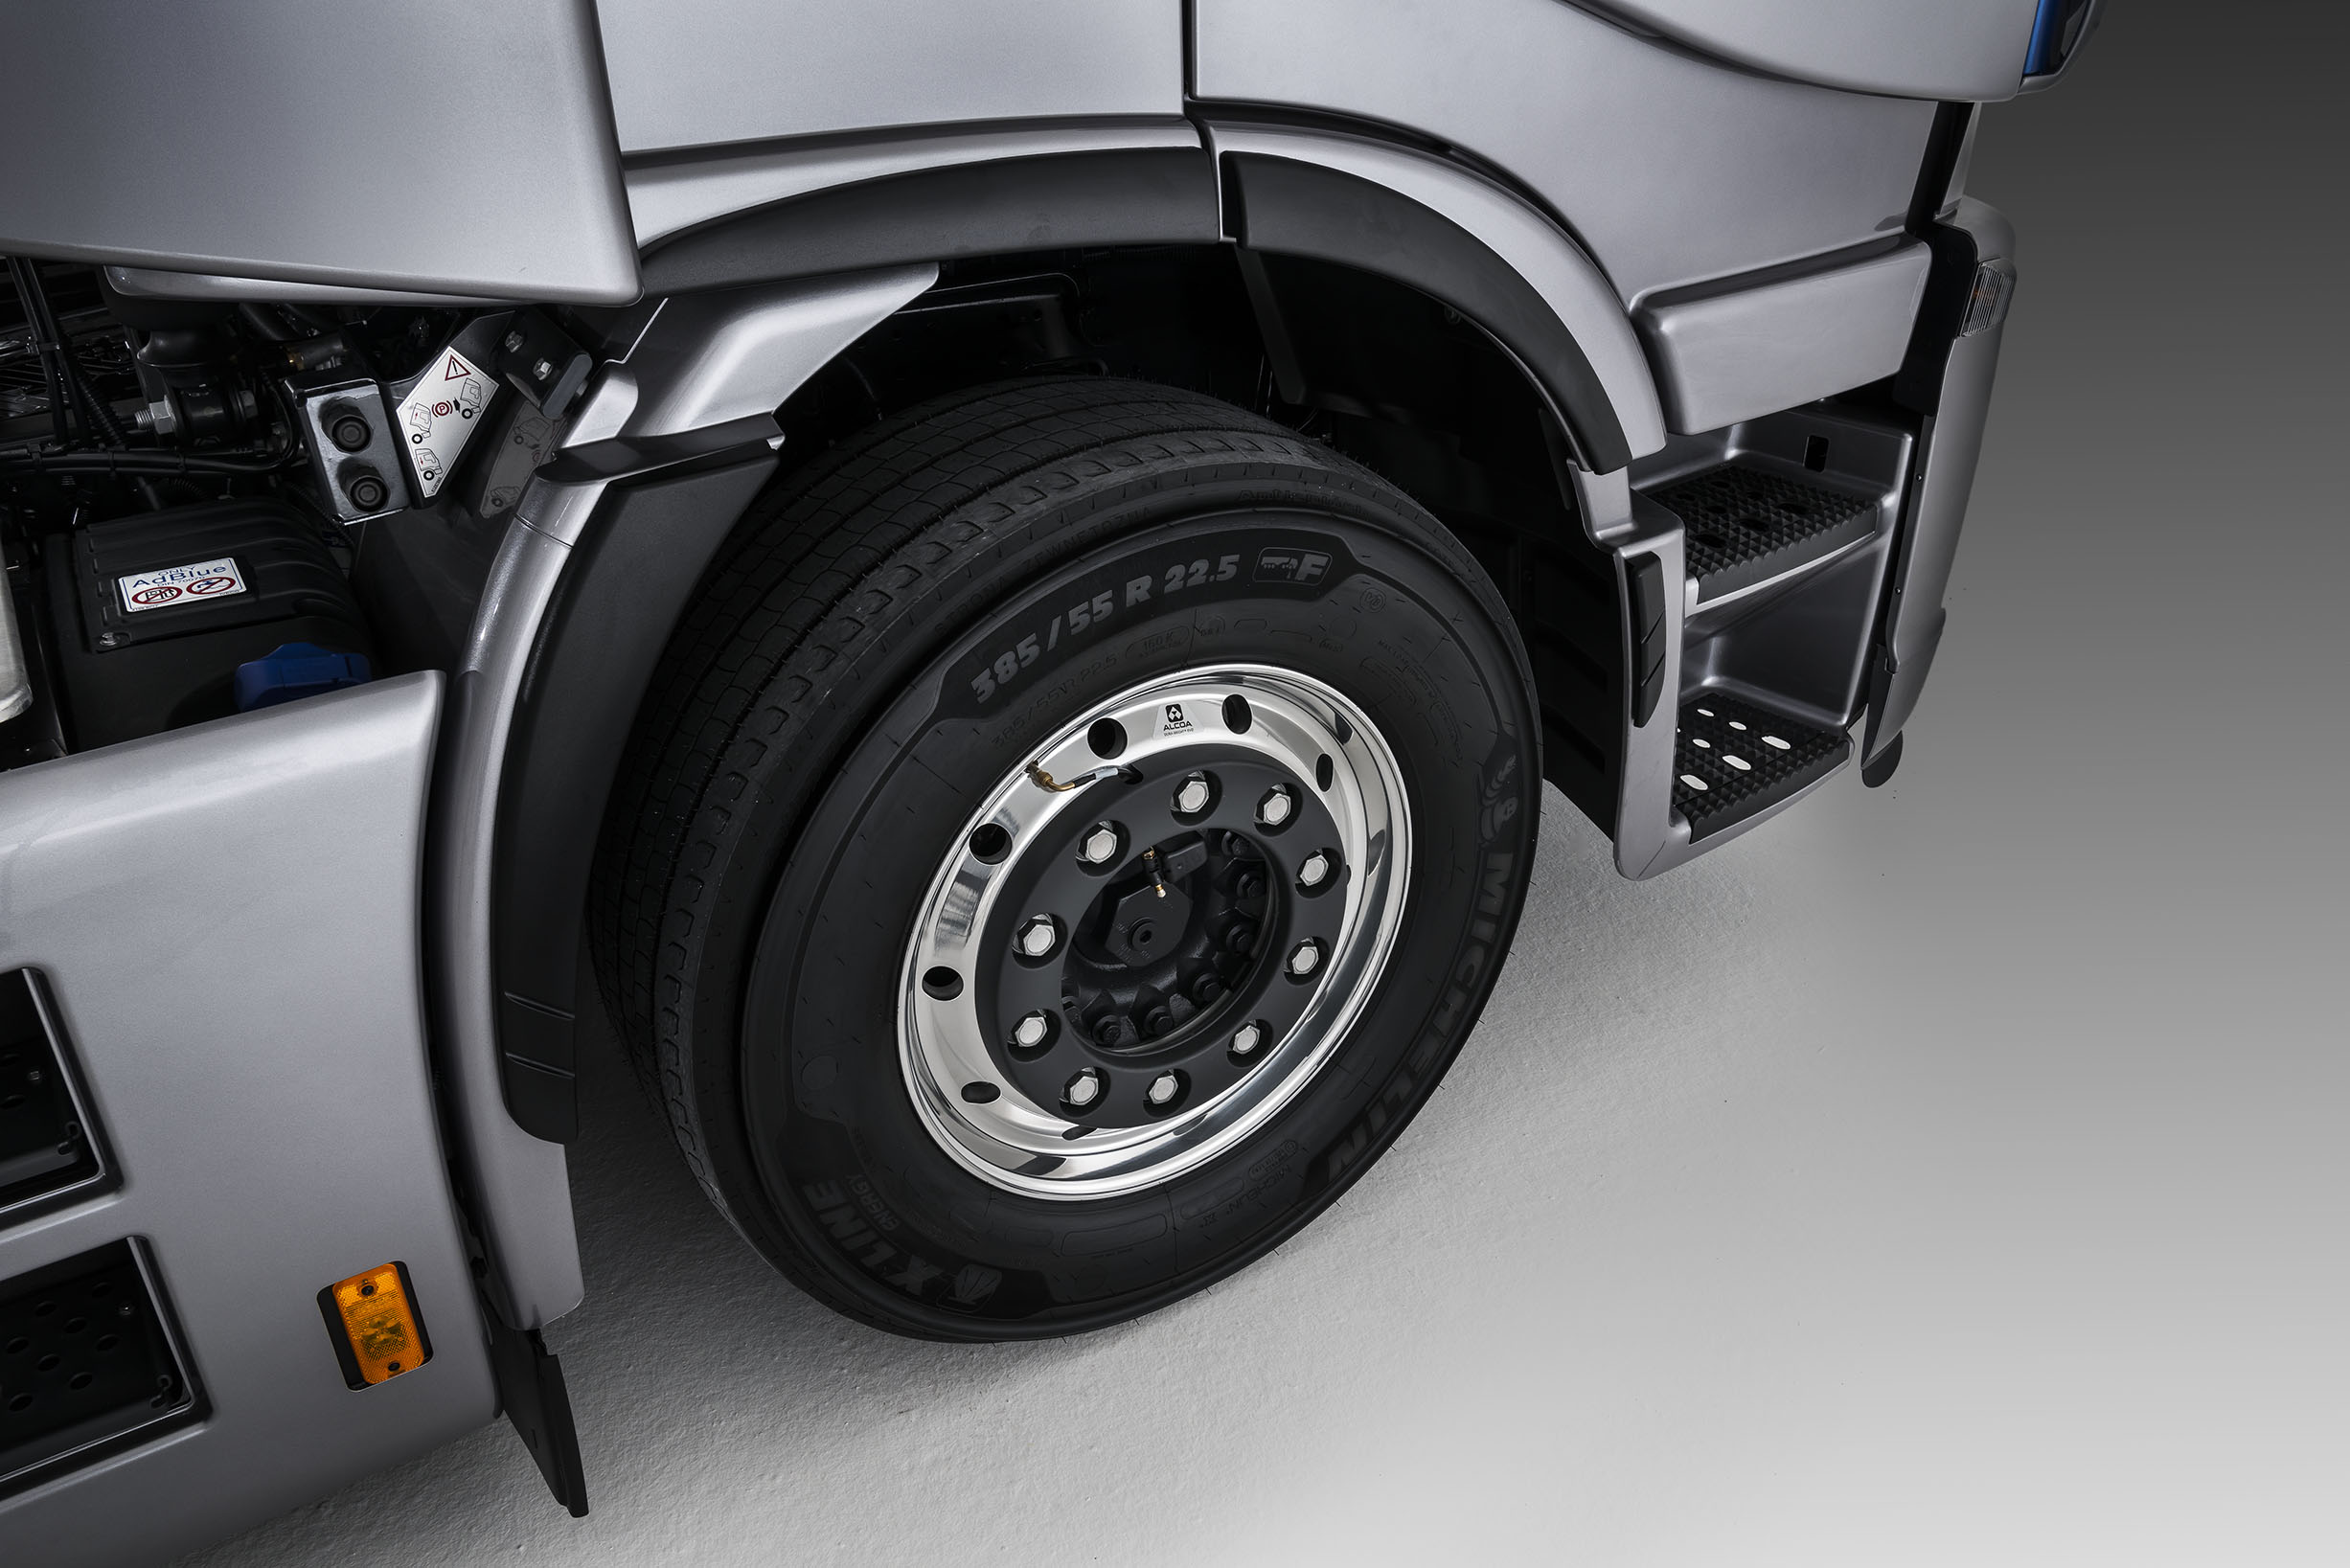 iveco-new-stralis-xp-wheels_27818428786_o.jpg